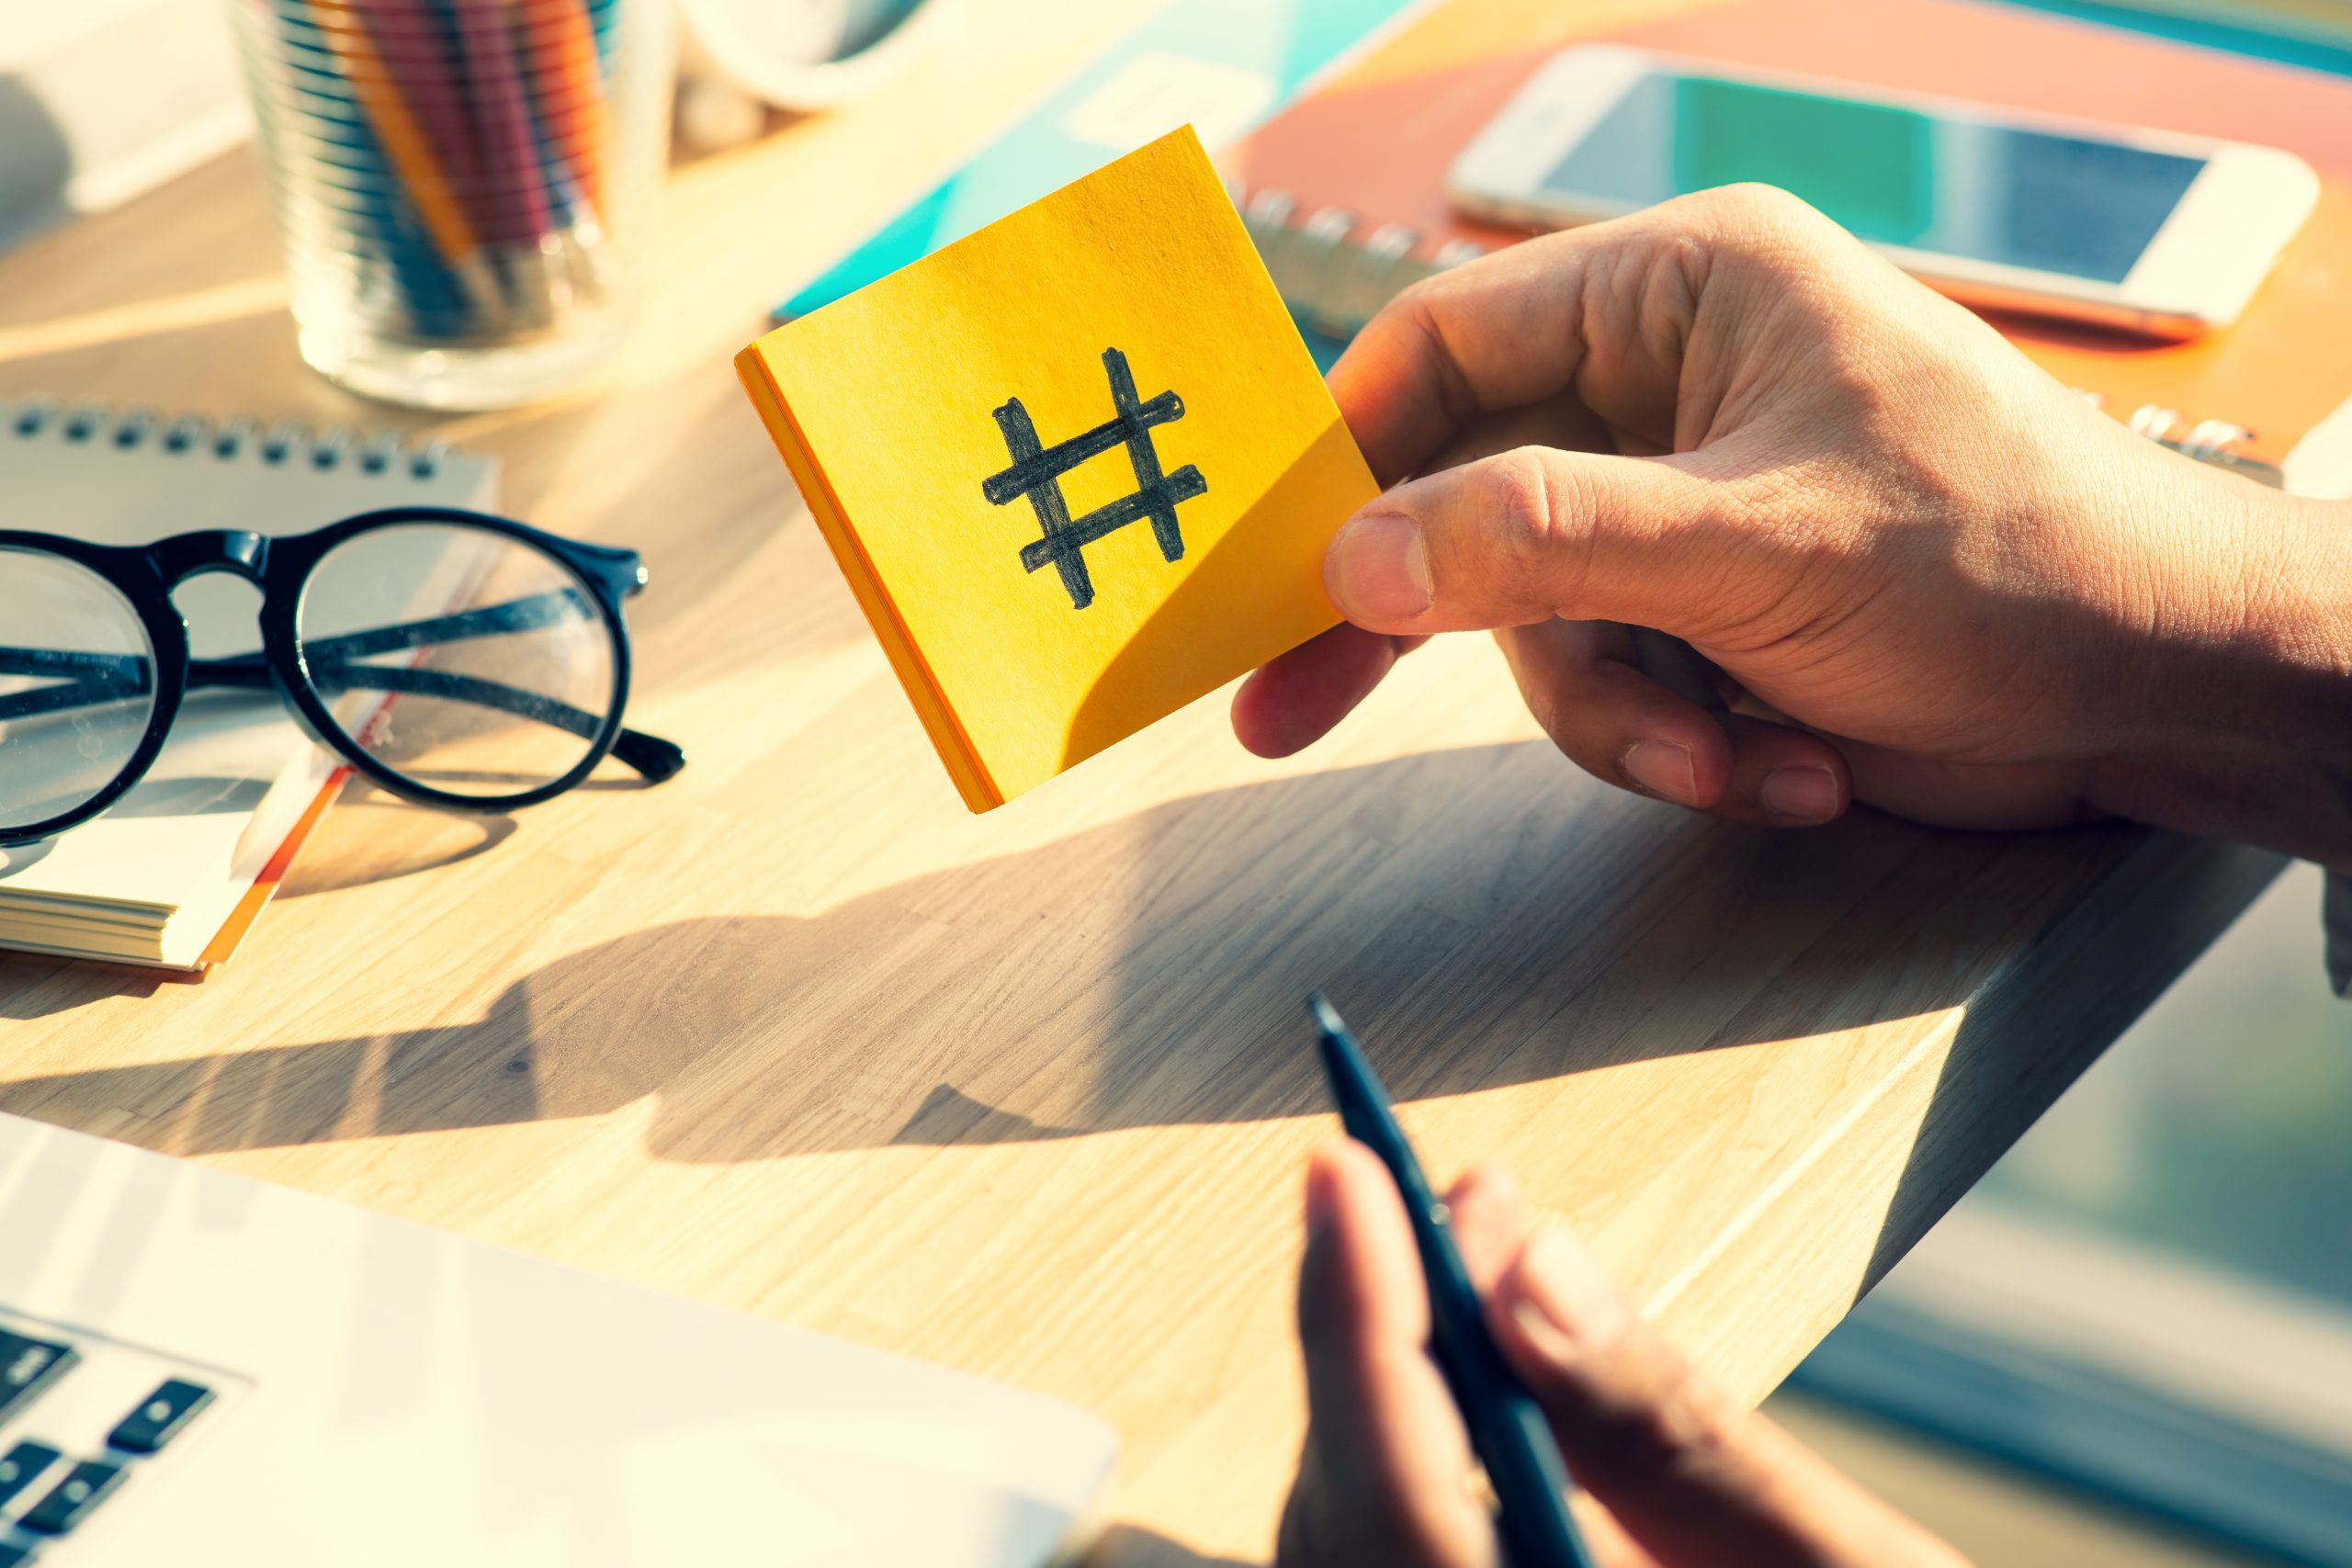 Restaurant Hashtags Marketing and Social Media